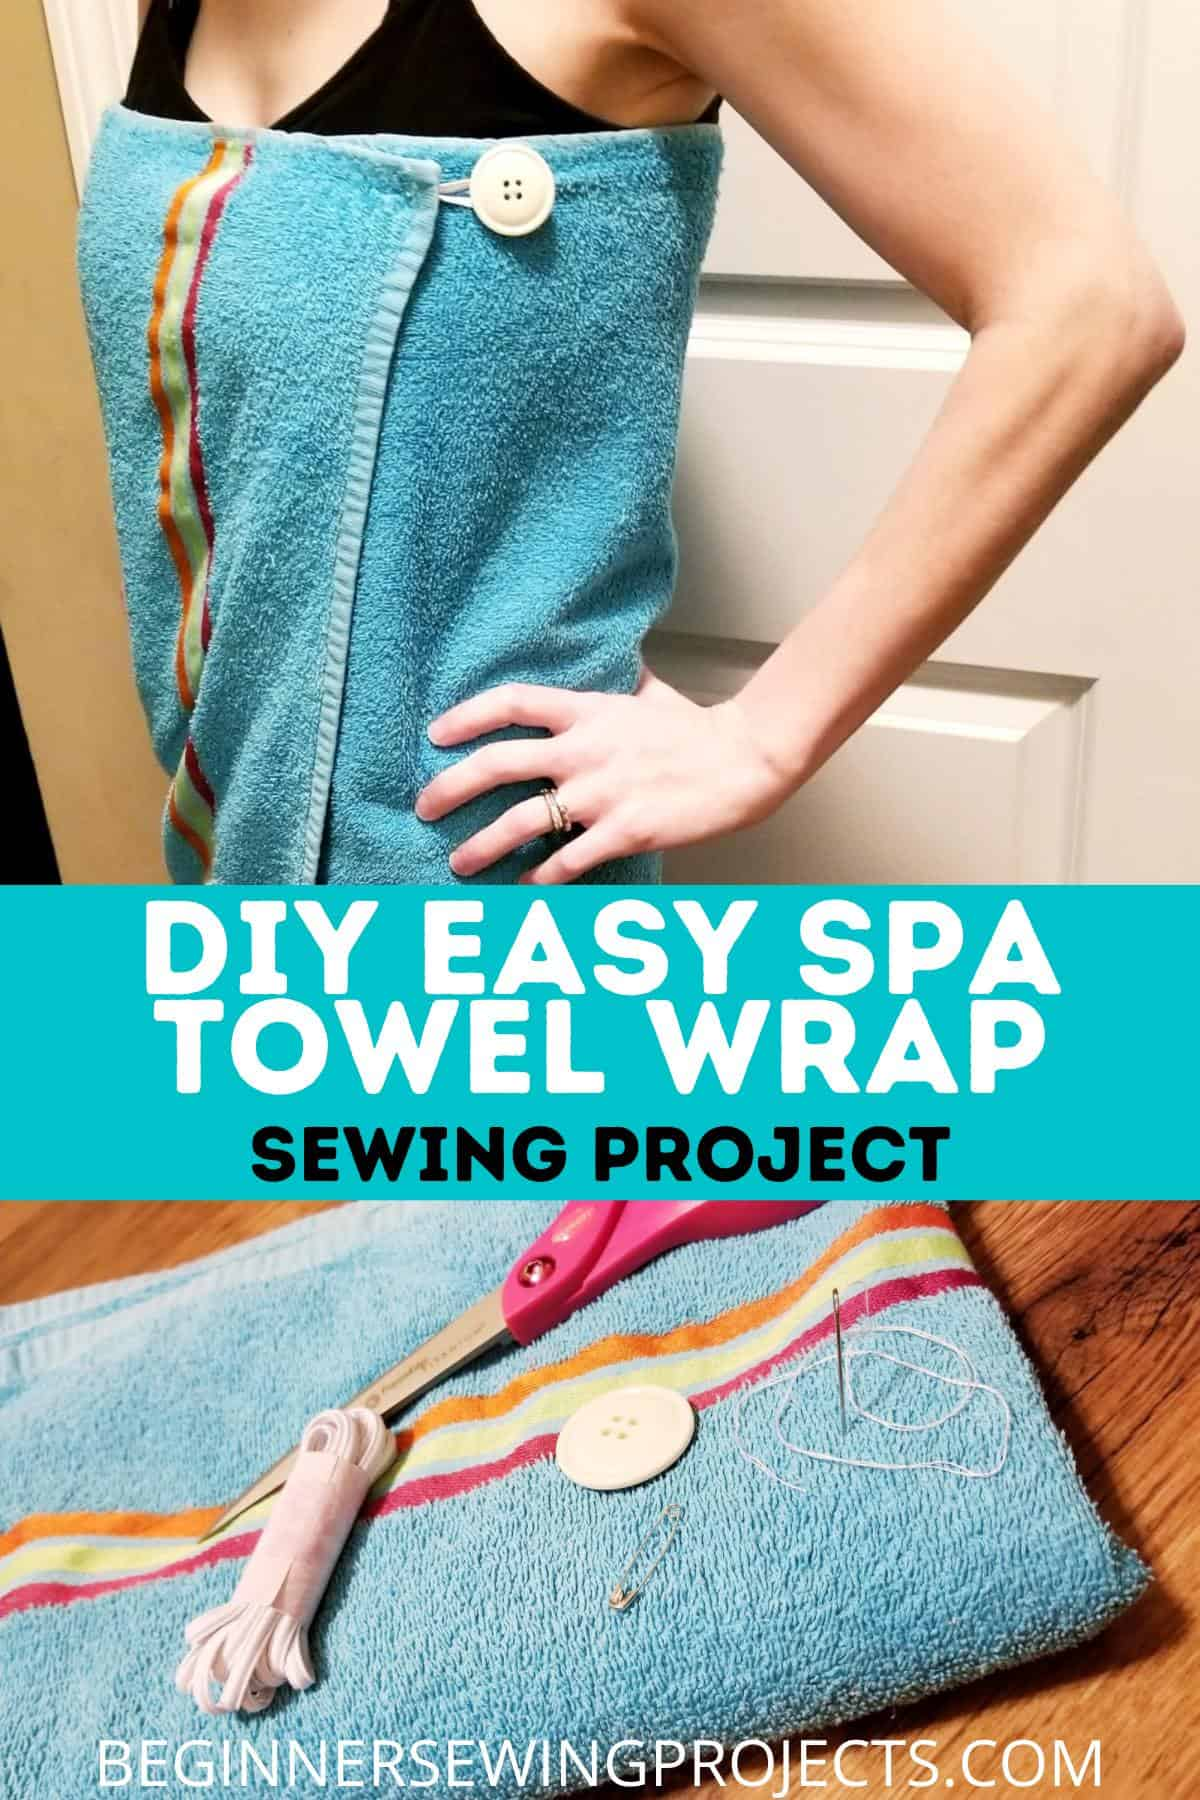 DIY Easy Spa Towel Wrap Sewing Project